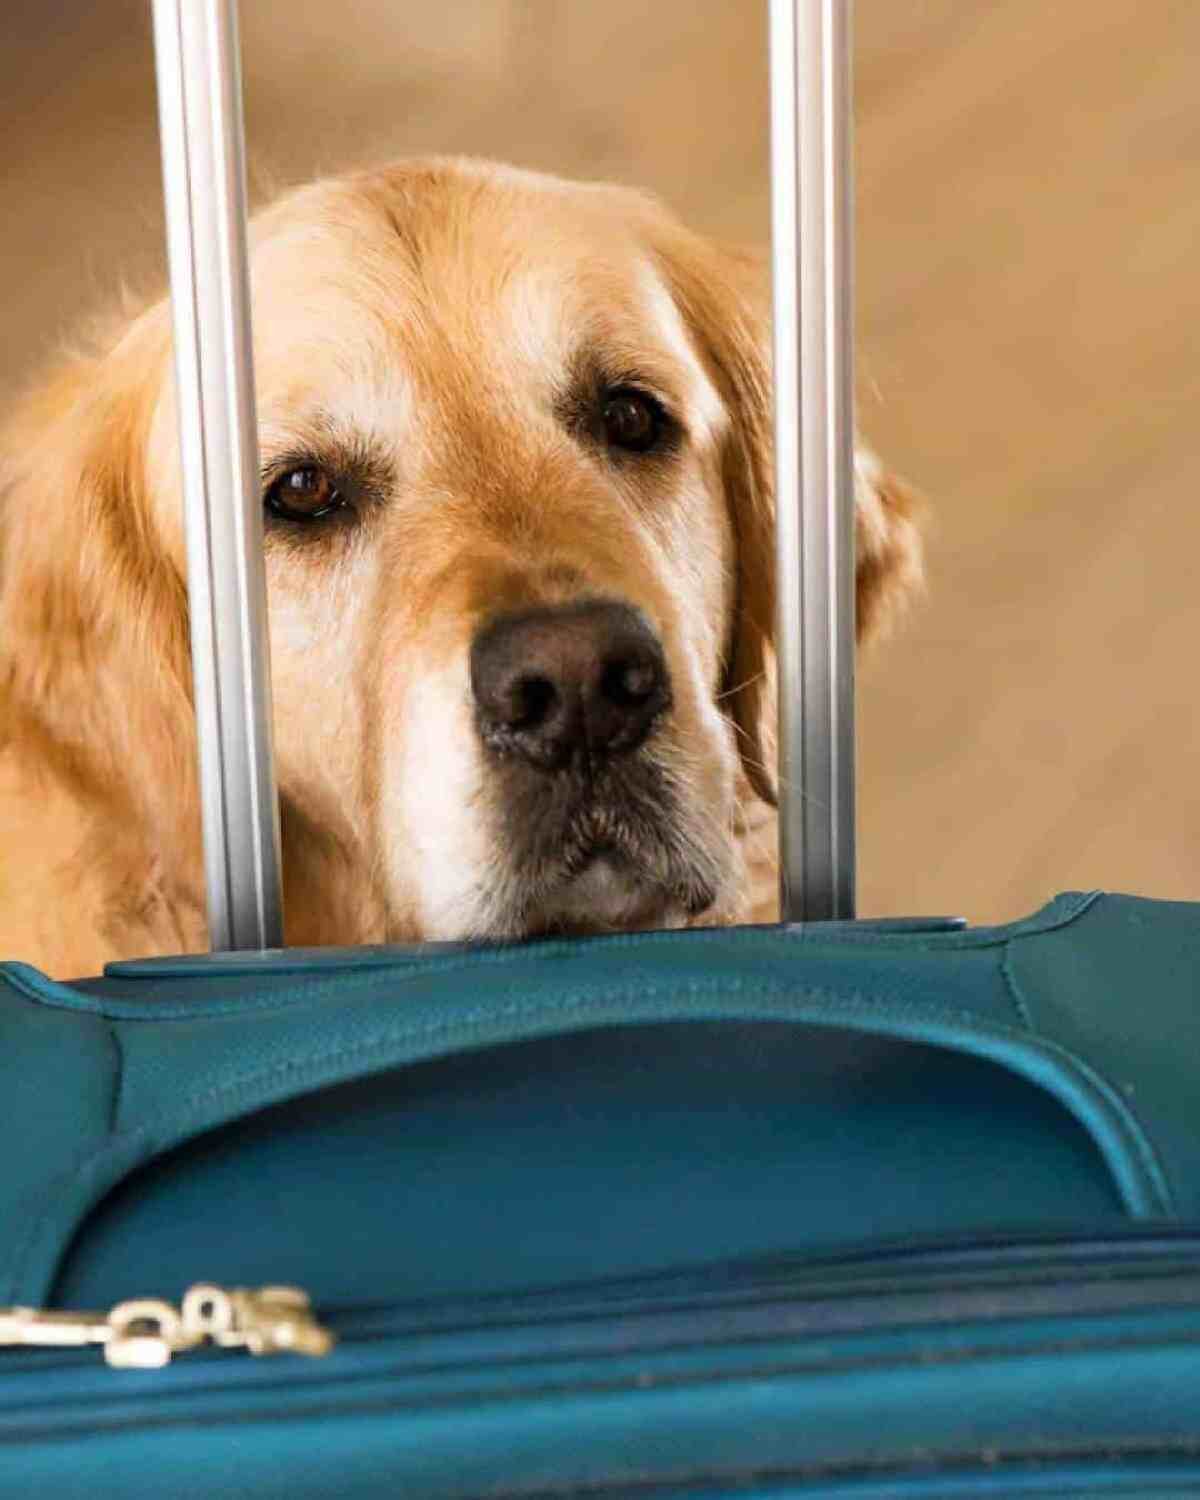 Dozer the golden retriever dog concerned at the sight of a suitcase